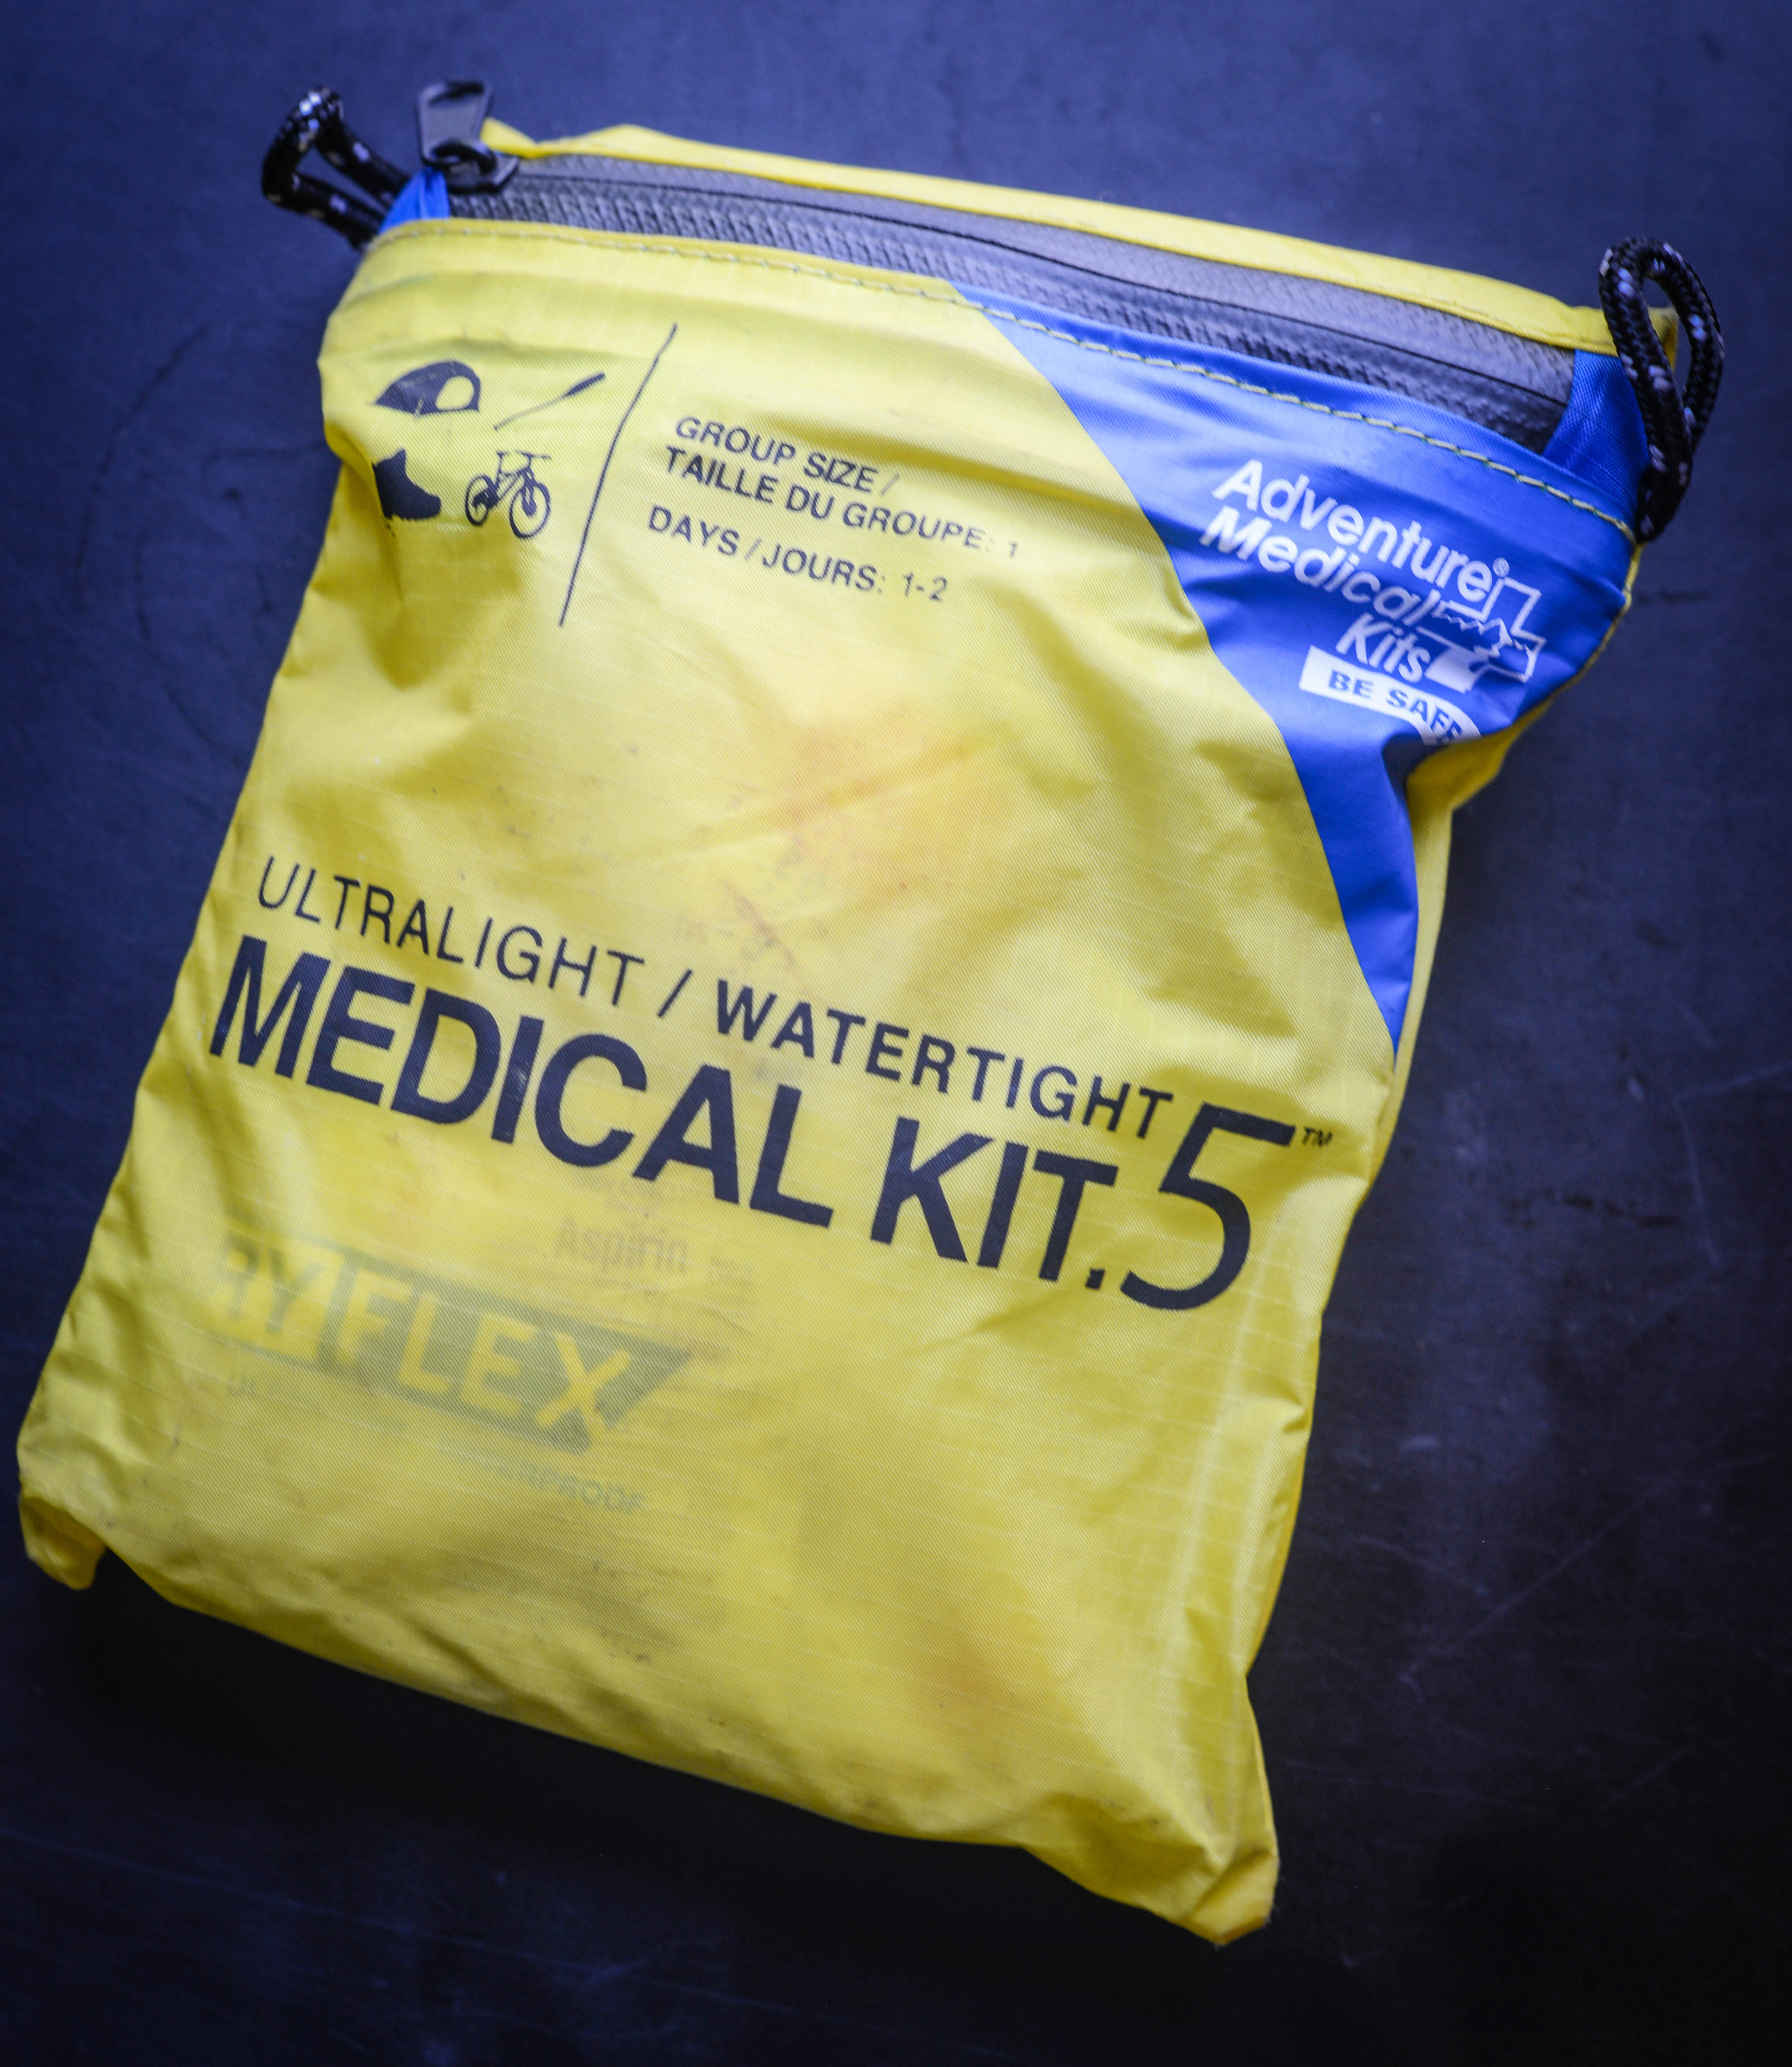 Medical Kit 5, which can be purchased for about $15, is very light, compact, and has most of what you need for routine medical issues on/off the trail